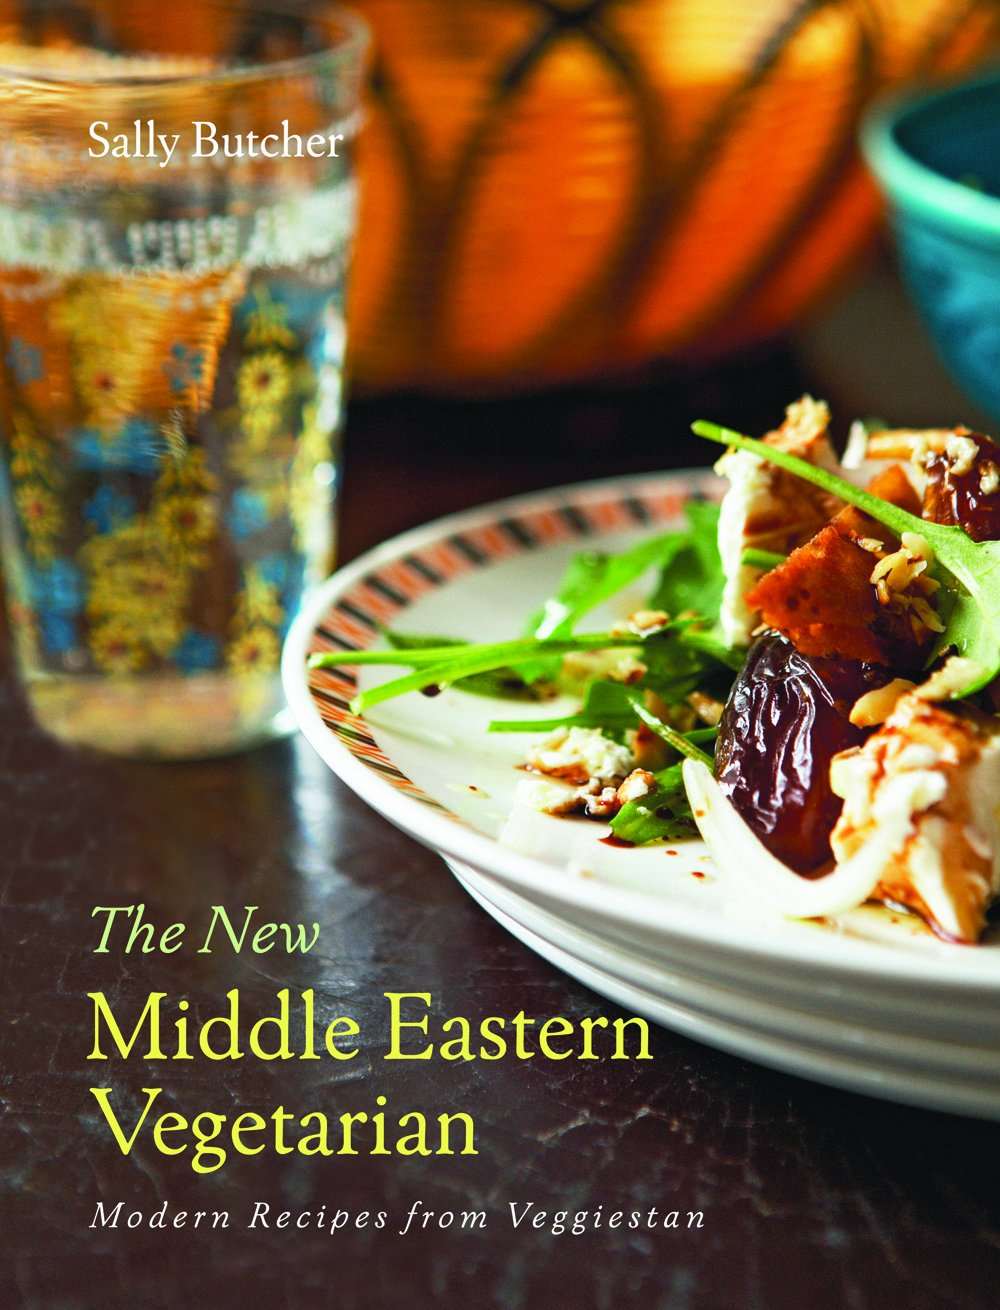 Persian posh and jewish soul two veg friendly cookbooks for spring the new middle eastern vegetarian aka veggiestan in the uk jewish soul food forumfinder Image collections